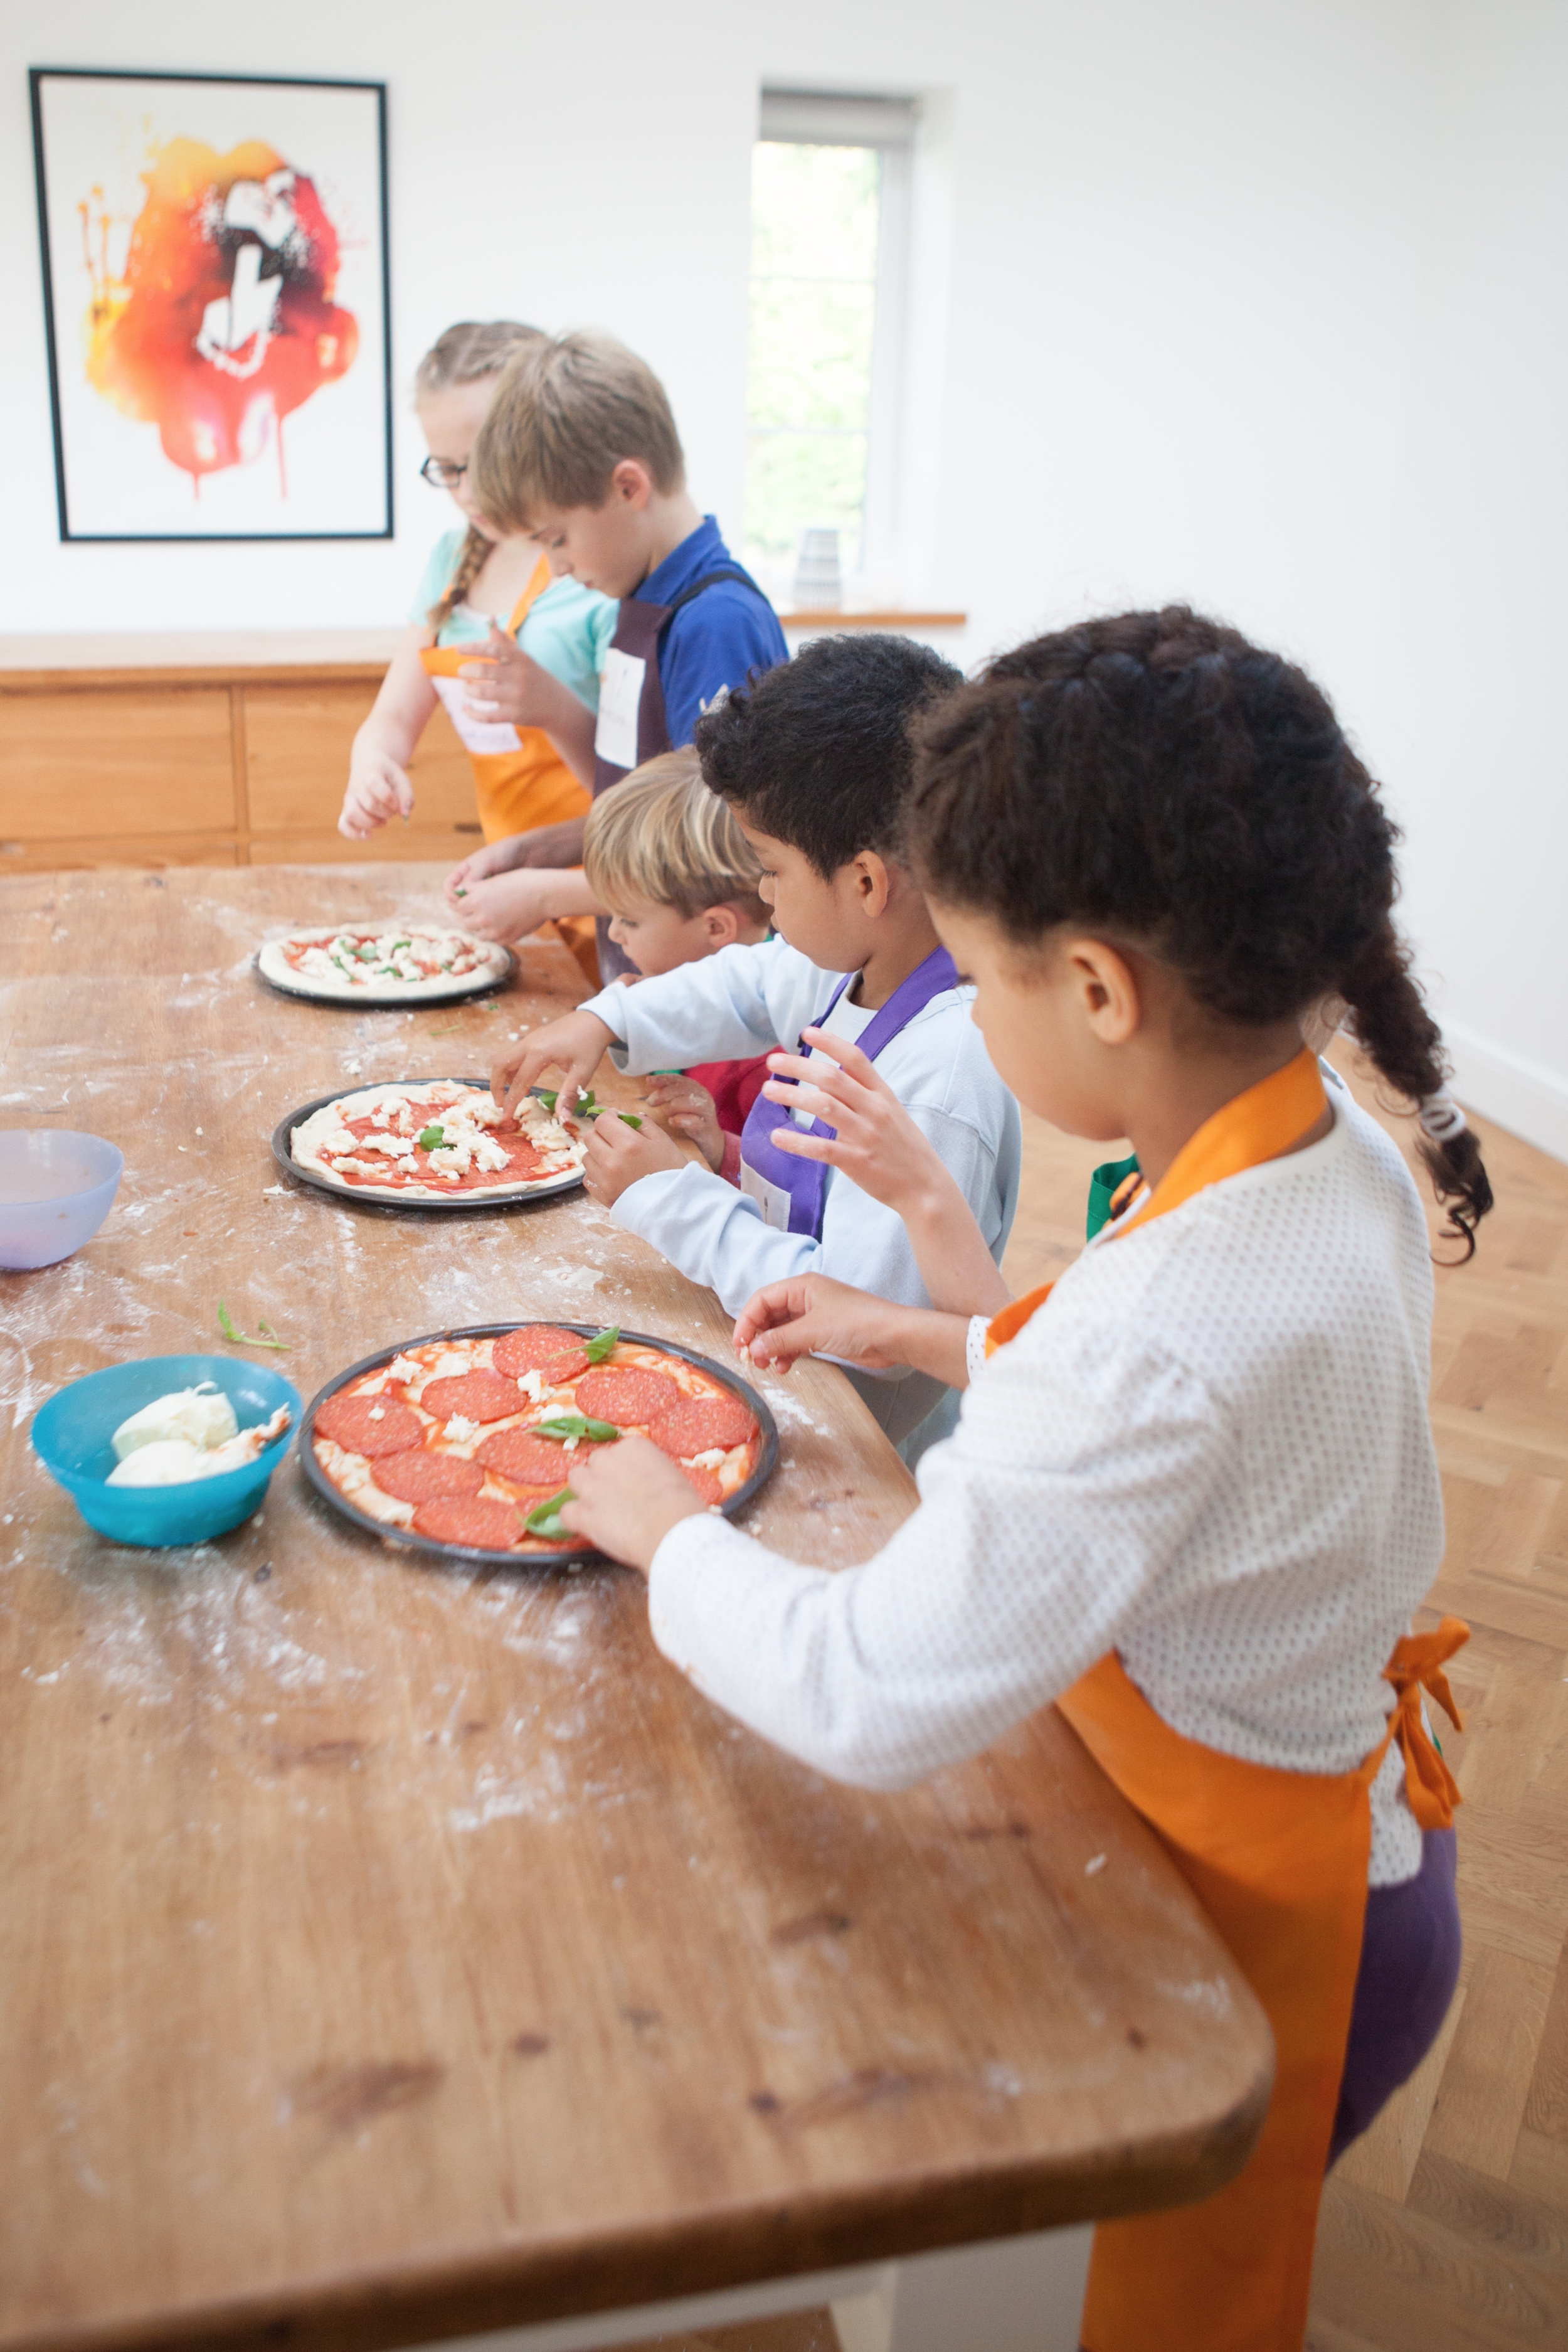 A grow cook enjoy class in process, children cooking pizza